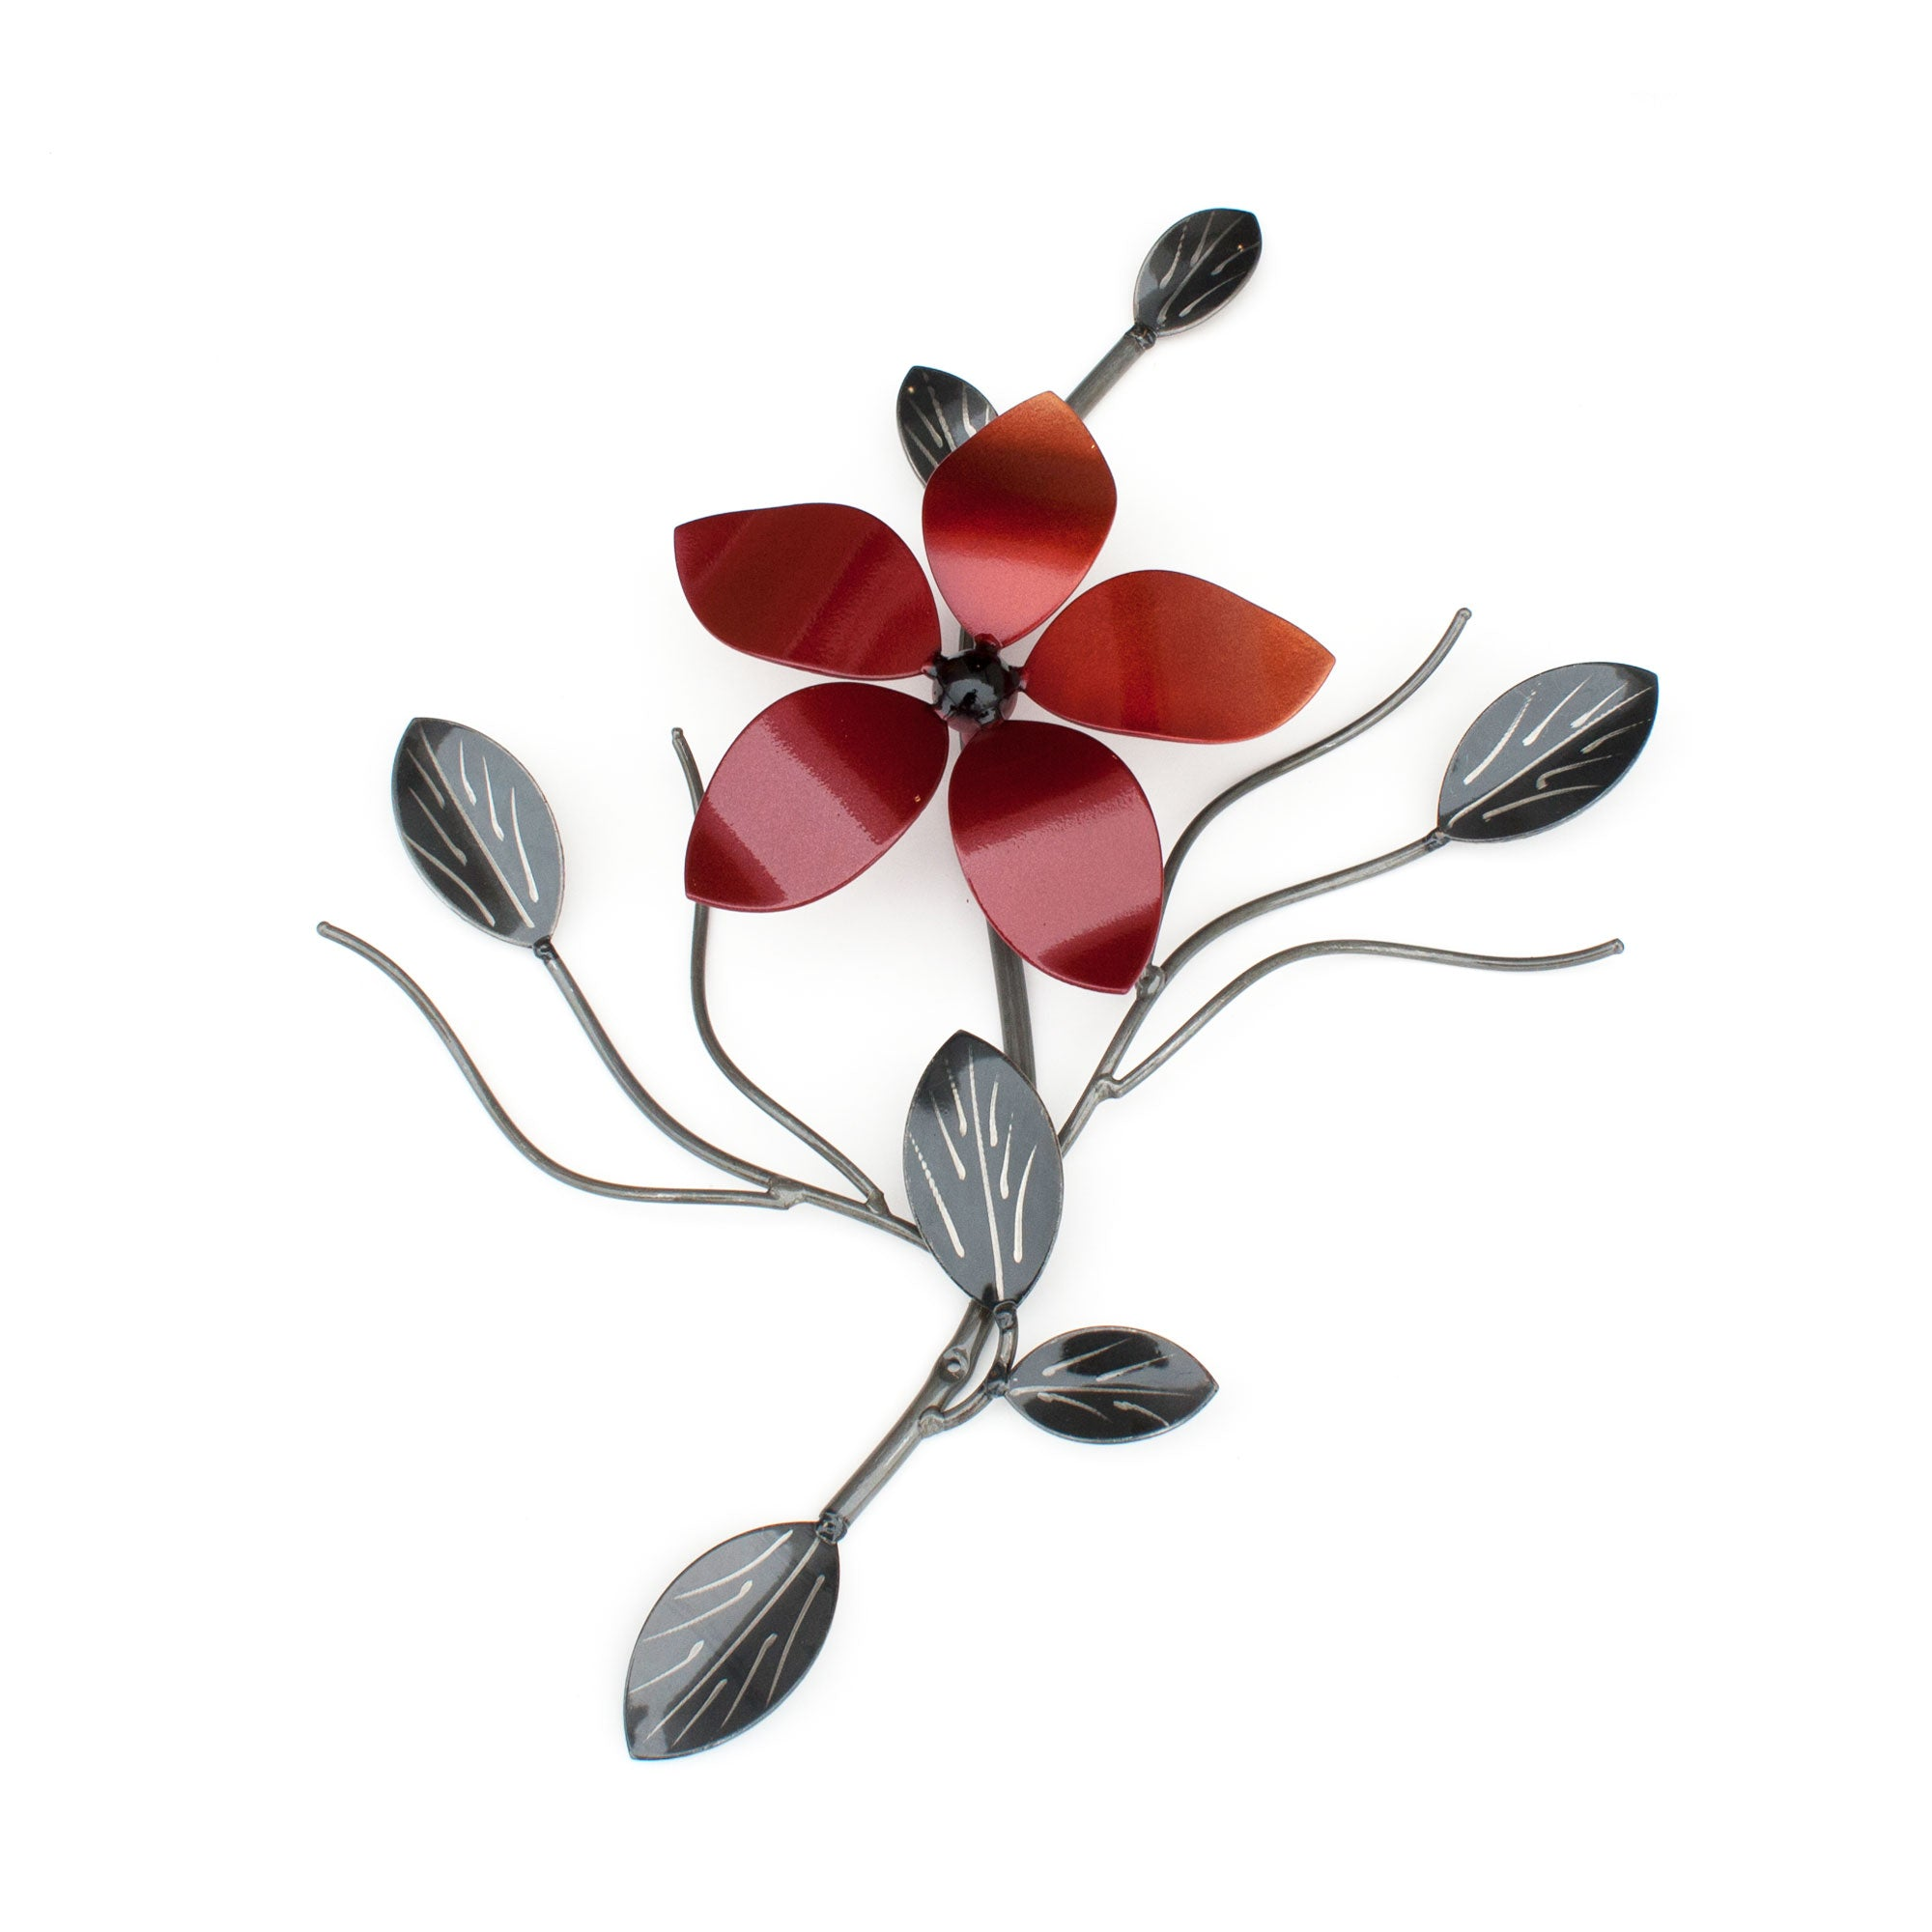 Metal Flower On A Single Vine : Metal Flowers On Vines = Wall-mounted Decor ̸ Décor